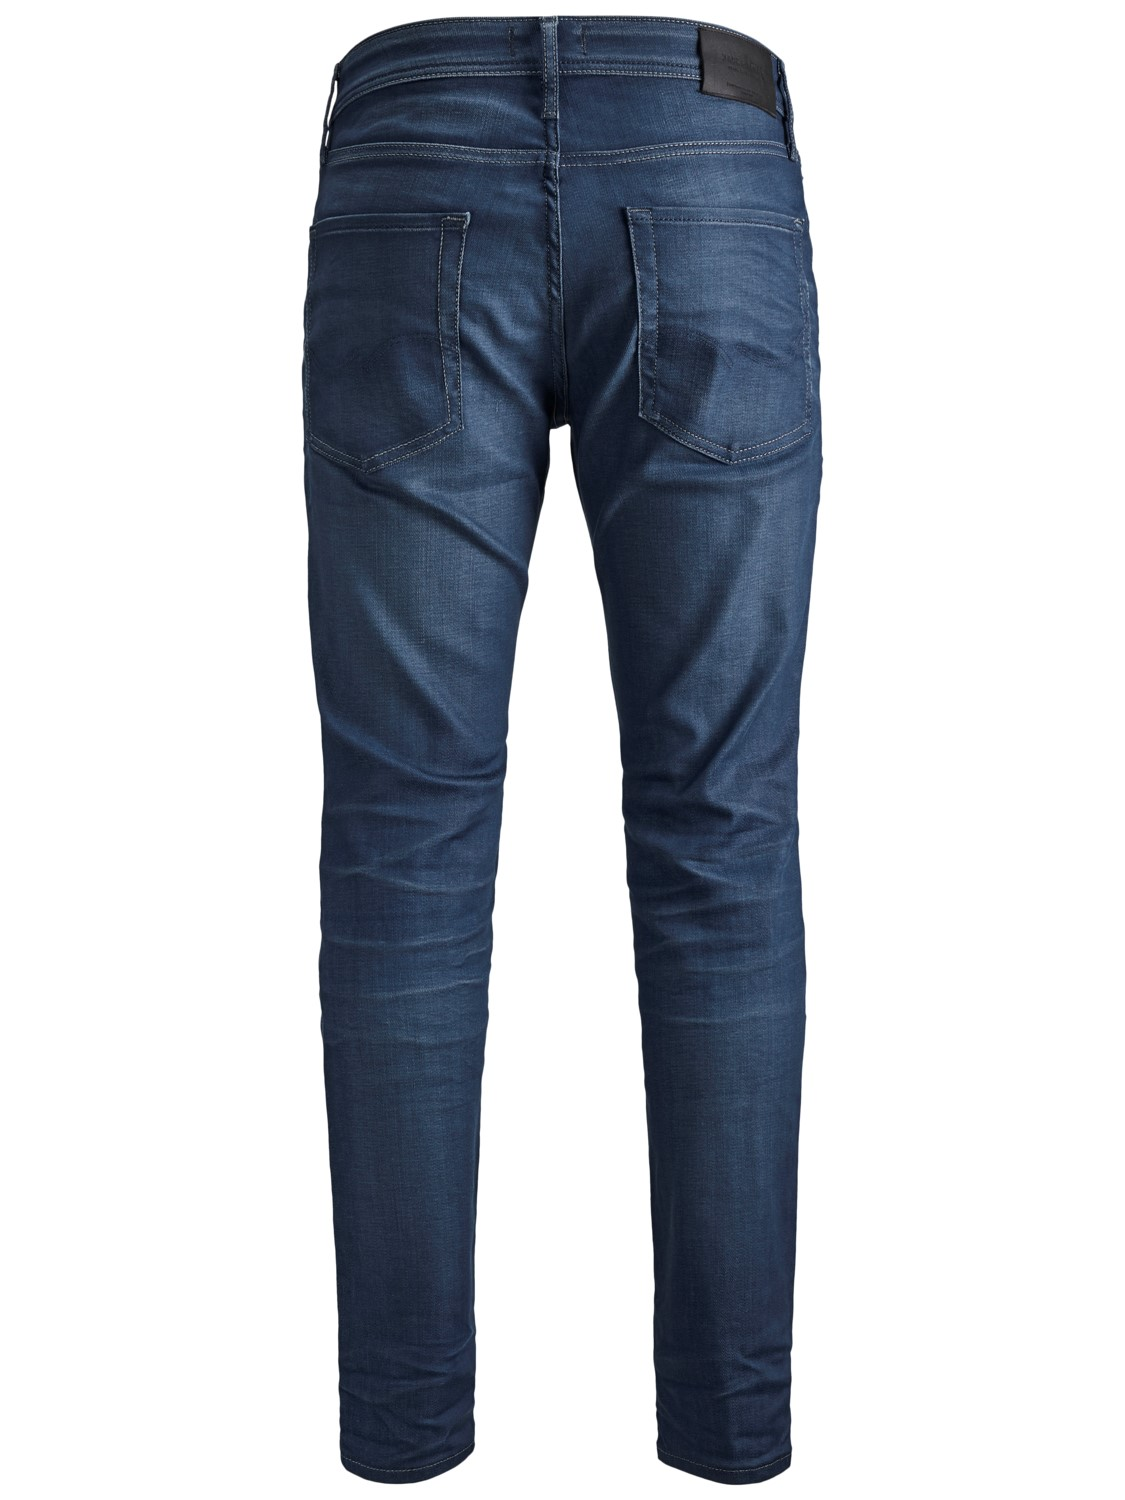 jack-jones-herren-jeans-jjitim-jjoriginal-jj-320-slim-fit-blau-blue-denim